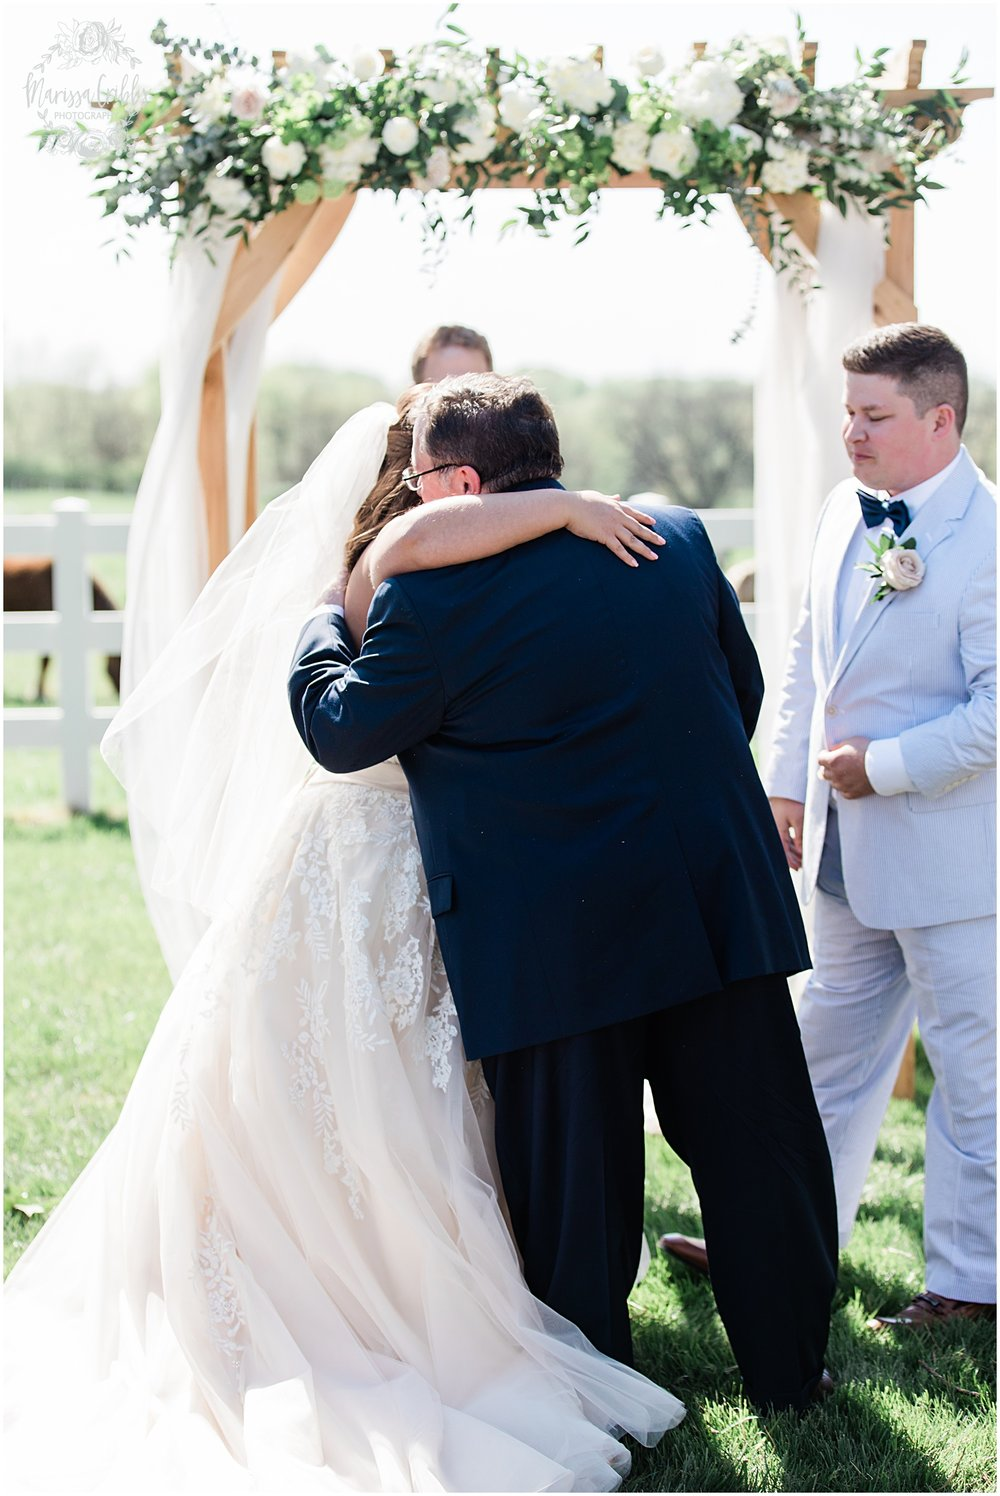 ANDREA & MICHAEL WEDDING | HICKORY CREEK RANCH | MARISSA CRIBBS PHOTOGRAPHY_4869.jpg